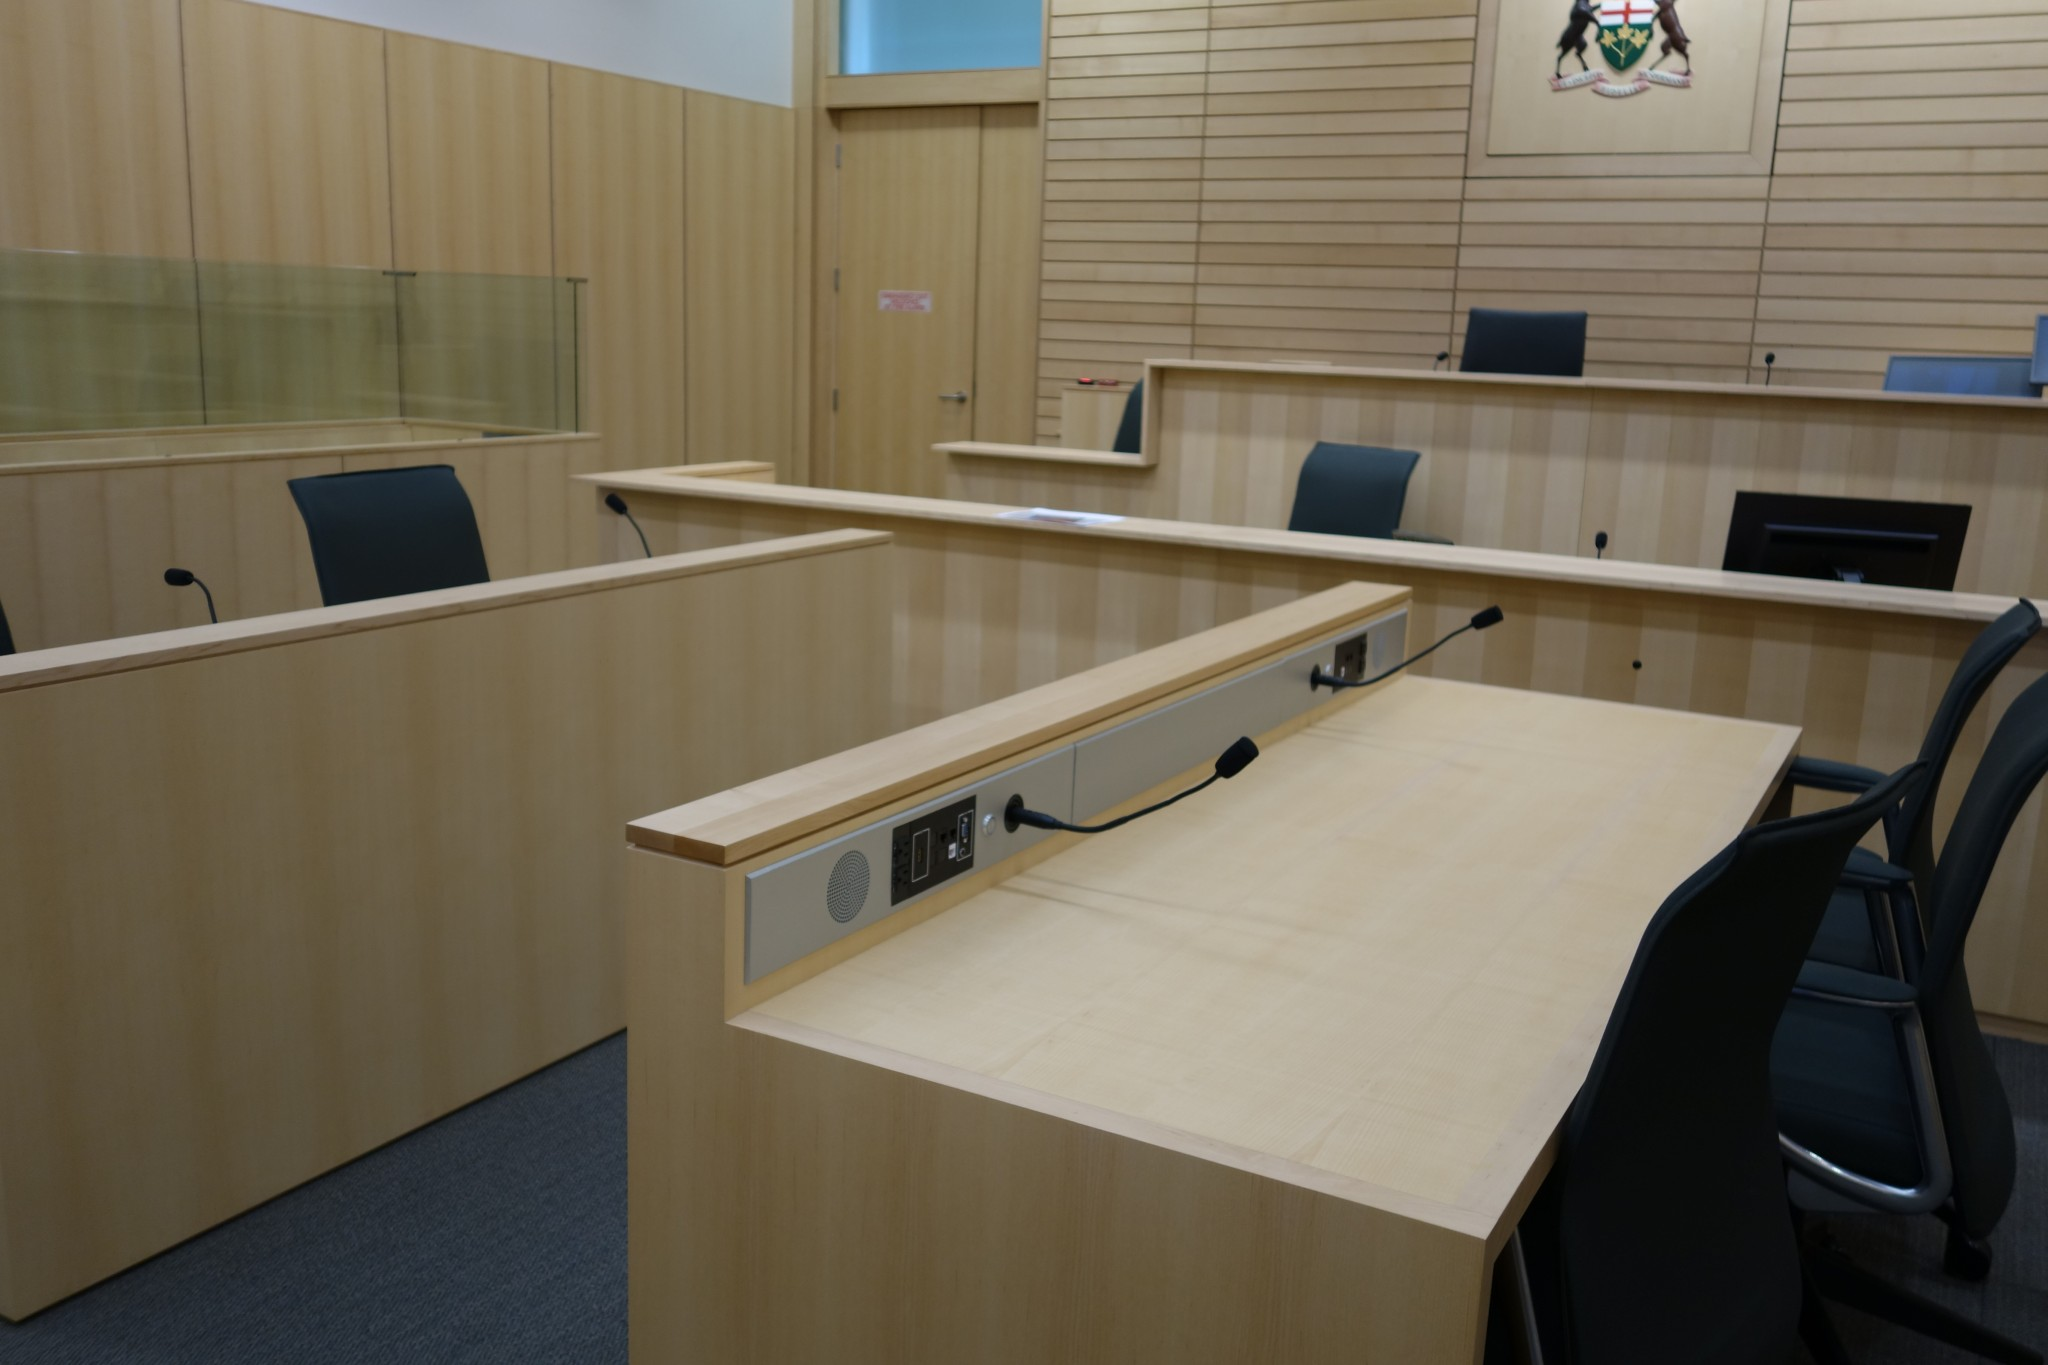 Courtroom (Quebec Style)